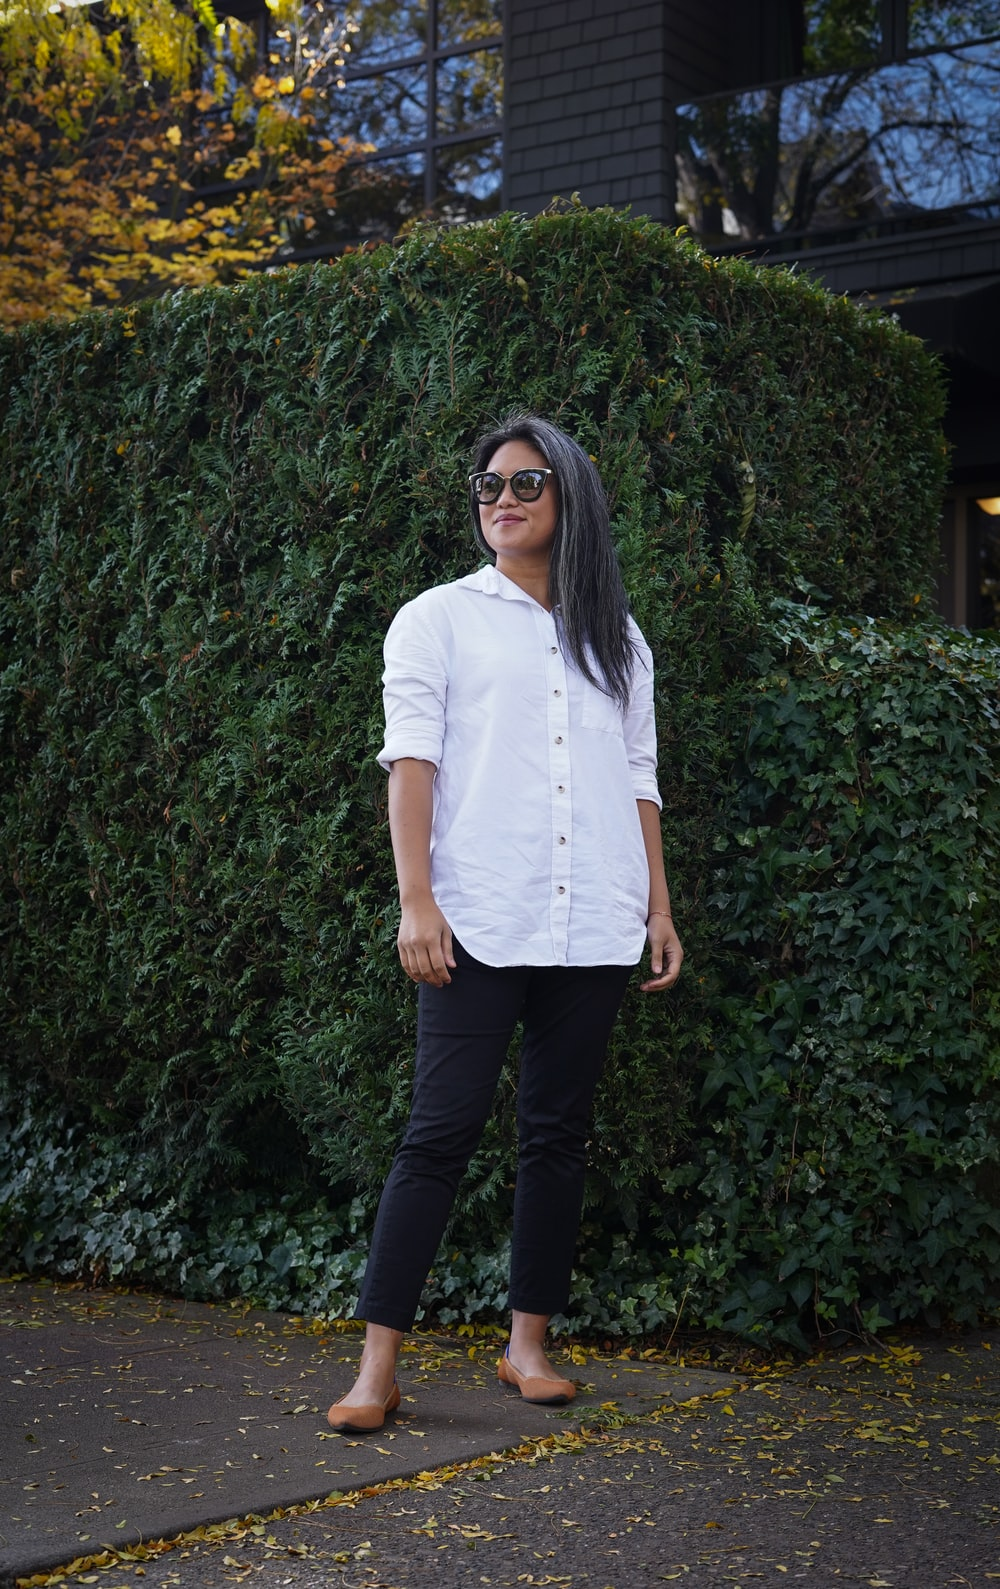 woman in white button up shirt and black pants standing near green plants during daytime